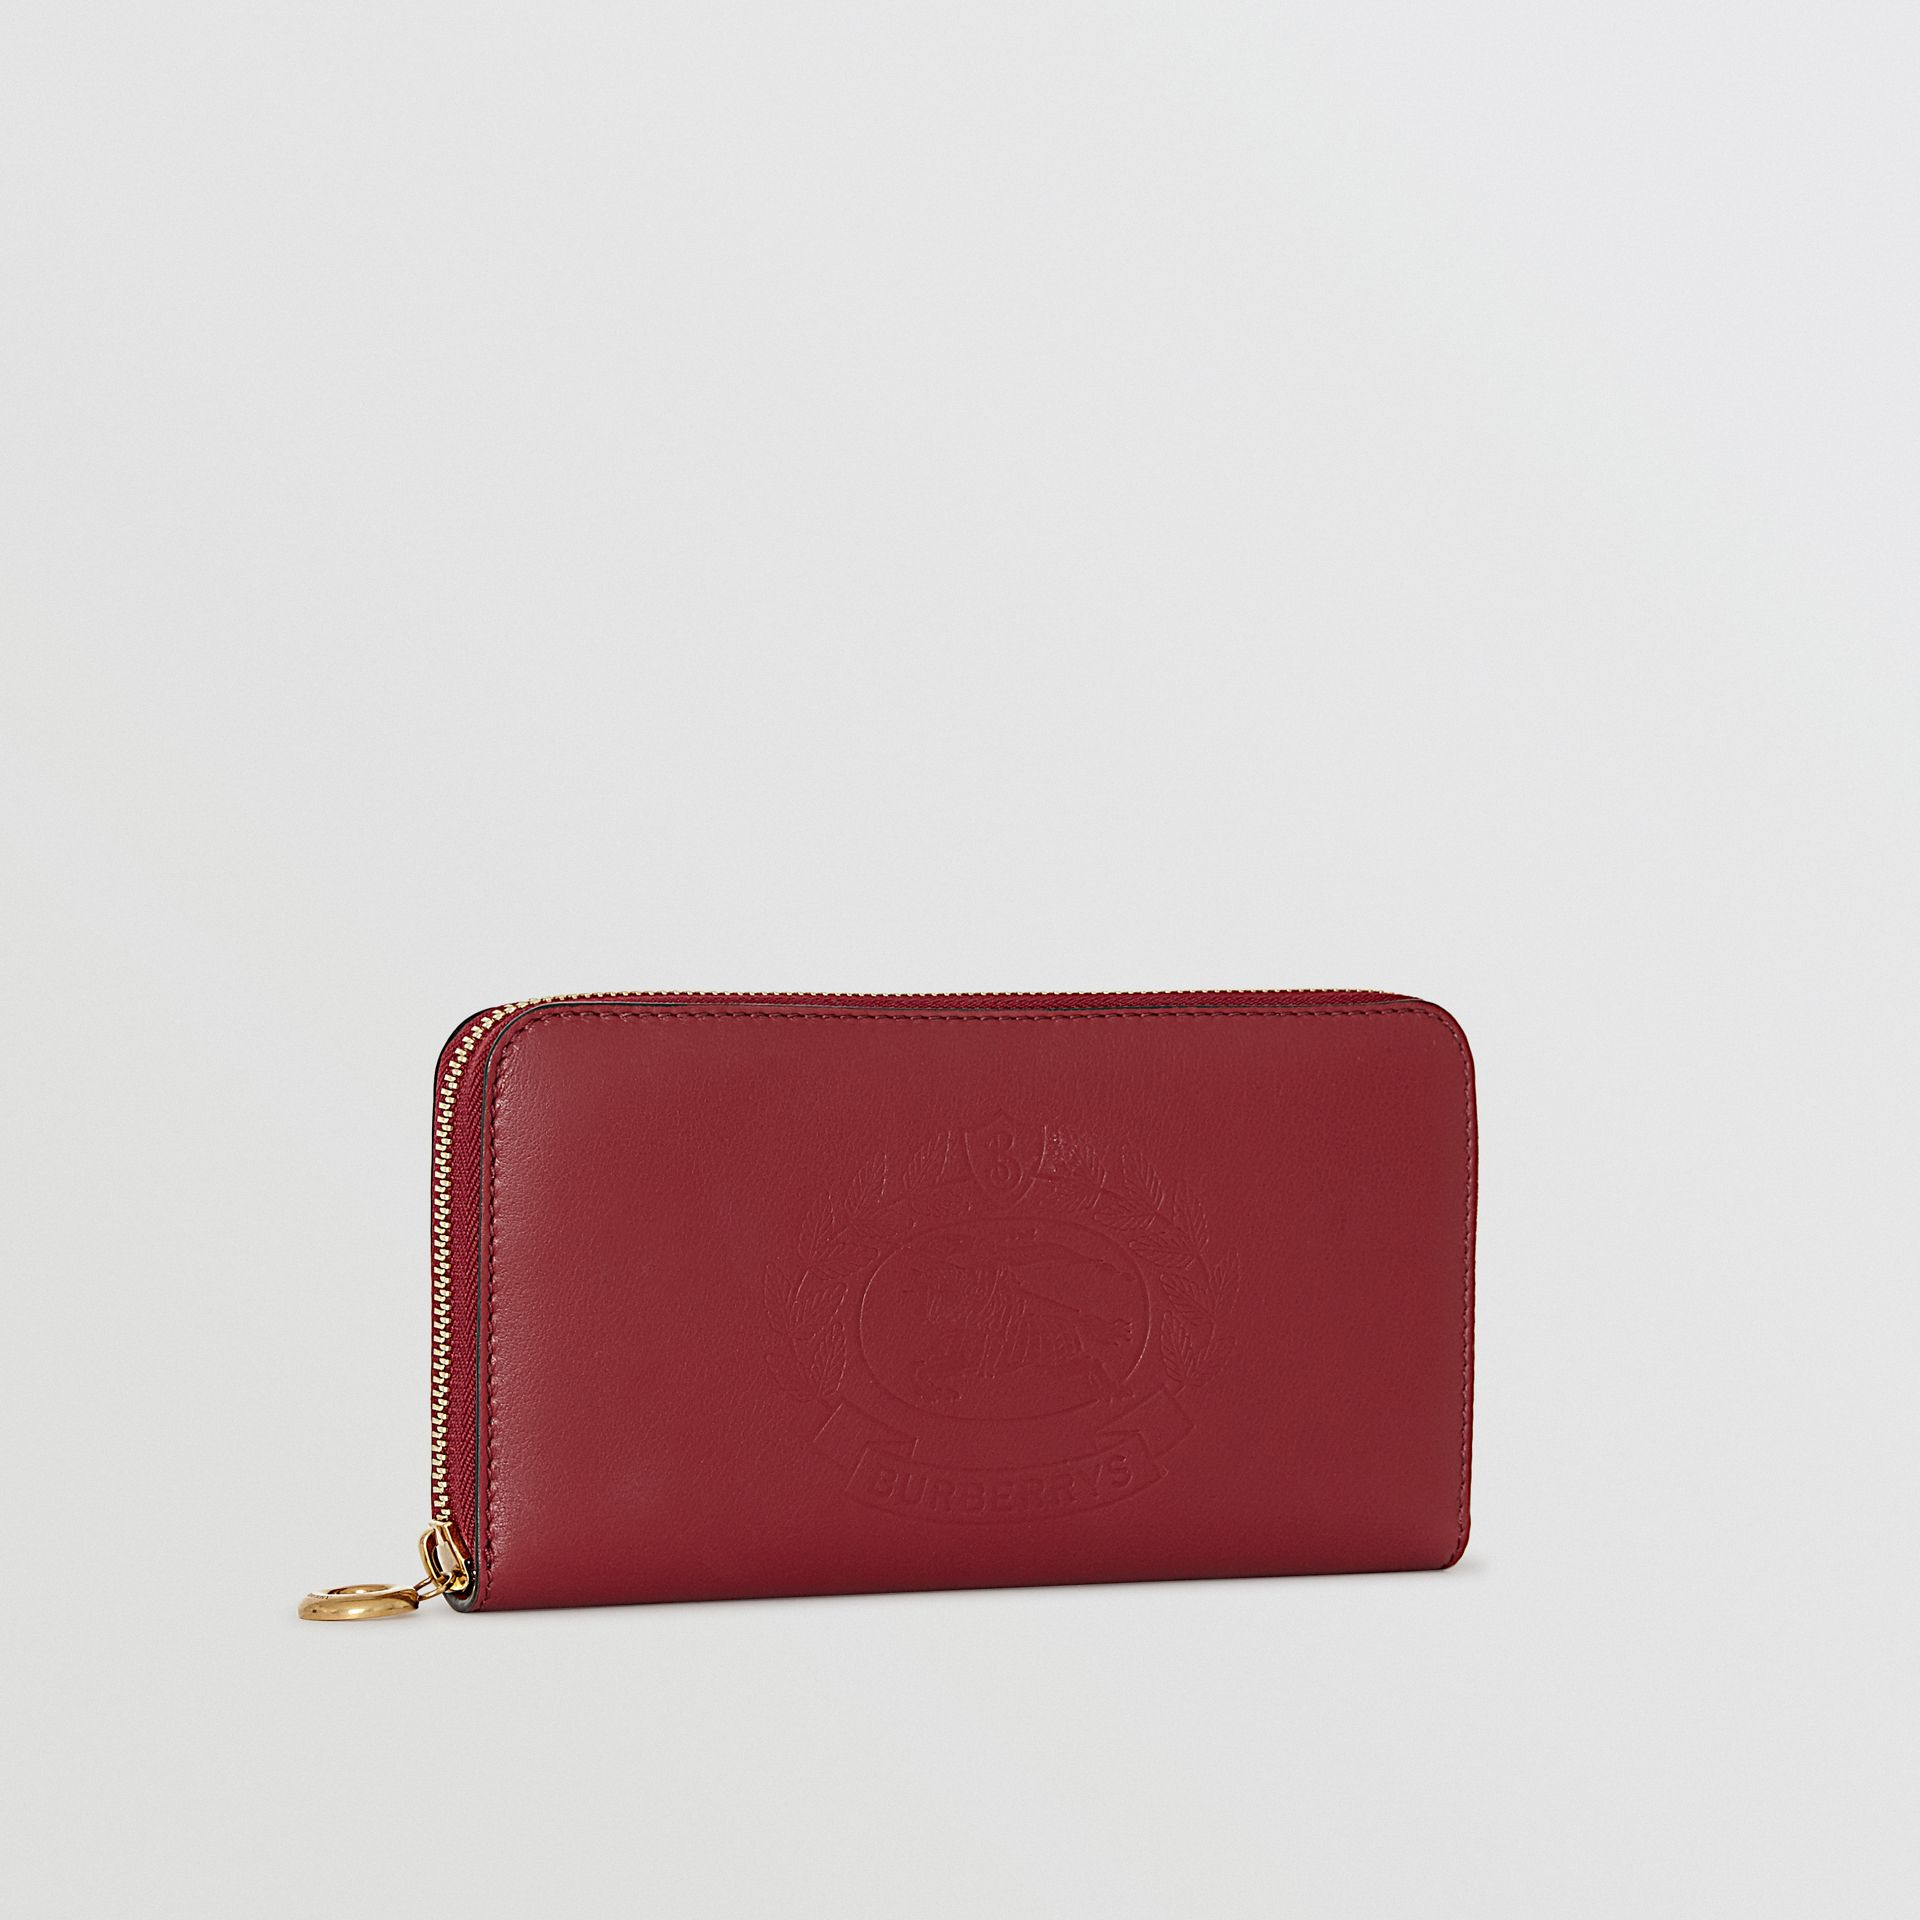 Embossed Crest Two-tone Leather Ziparound Wallet in Crimson - Women | Burberry Hong Kong - gallery image 3